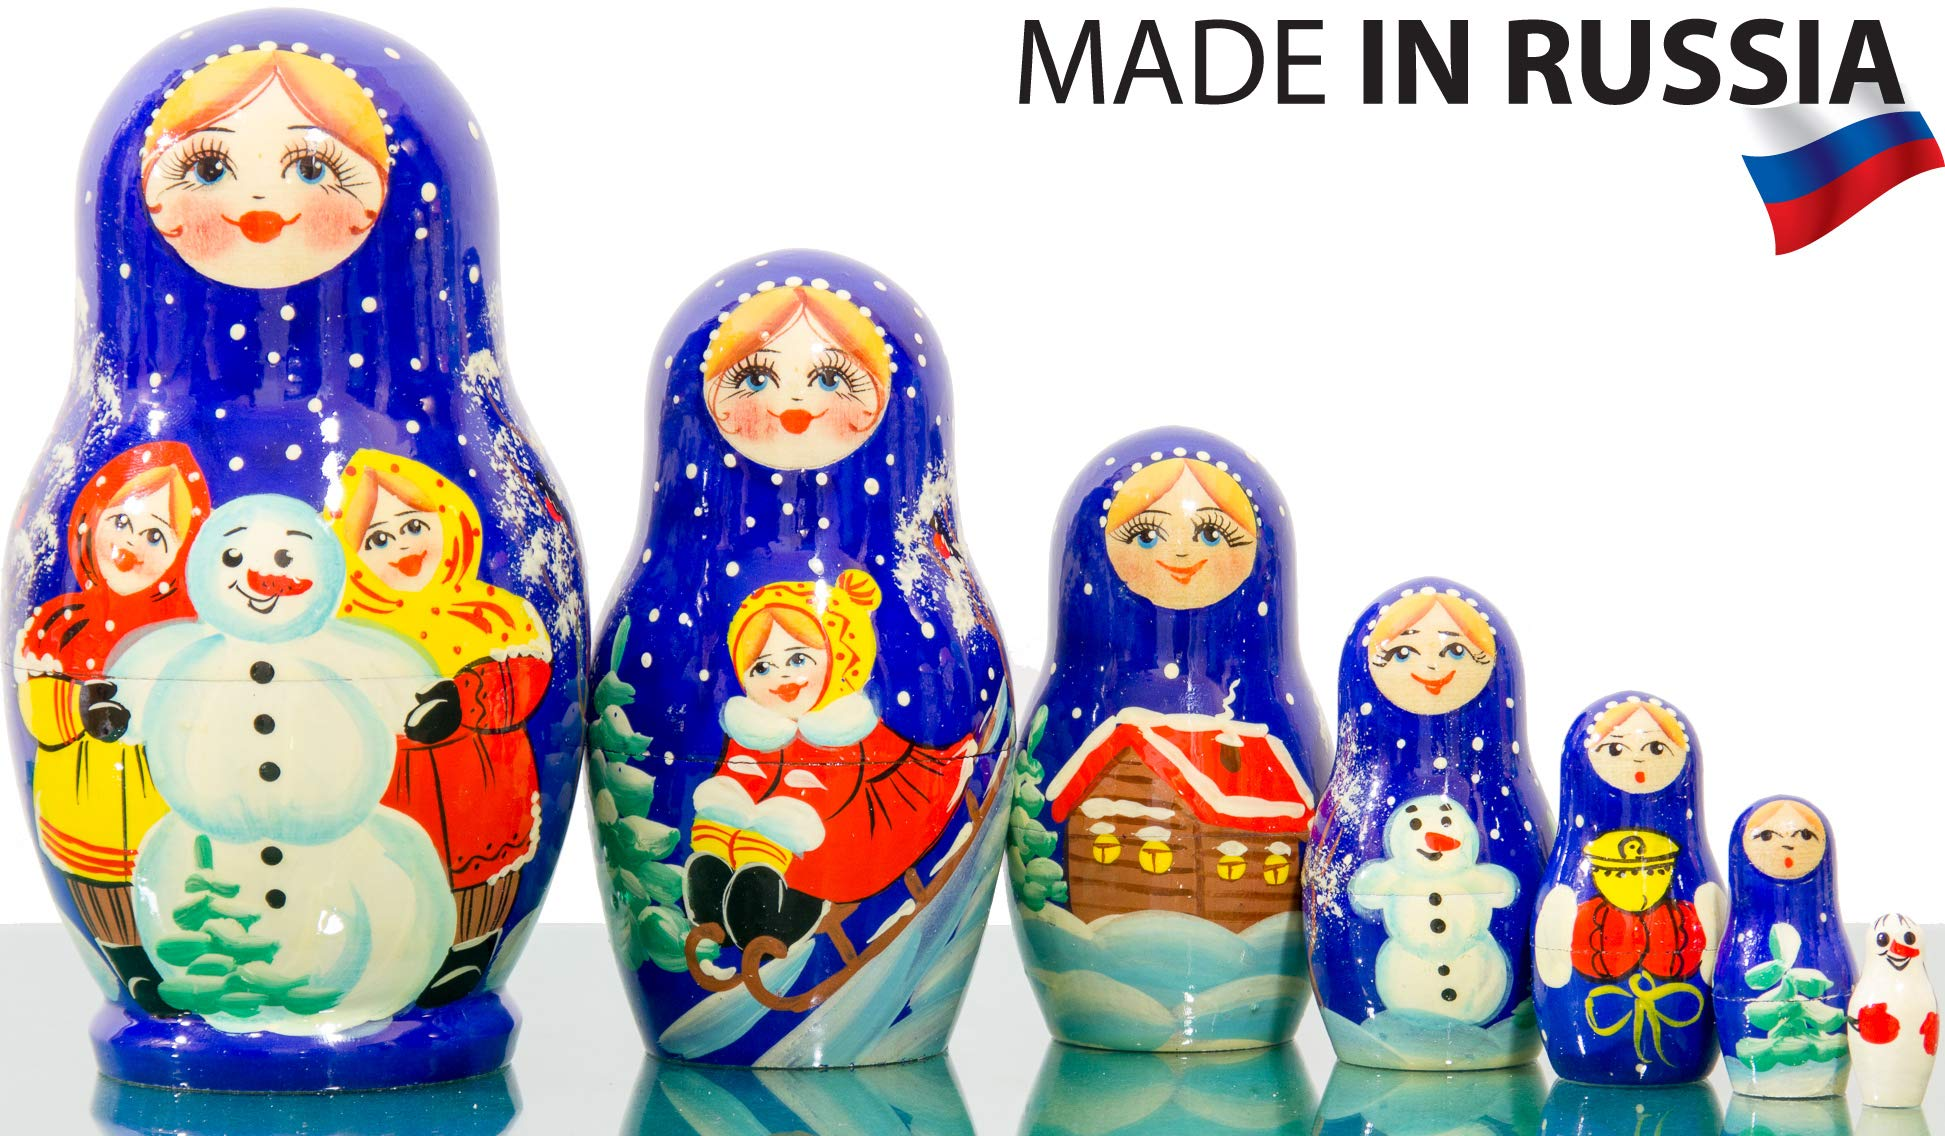 Russian Nesting Doll Dolls - Hand Painted in Russia - 5 Color/Size Variations - Traditional Matryoshka Babushka (4.75``(7 Dolls in 1), Floral B) by craftsfromrussia